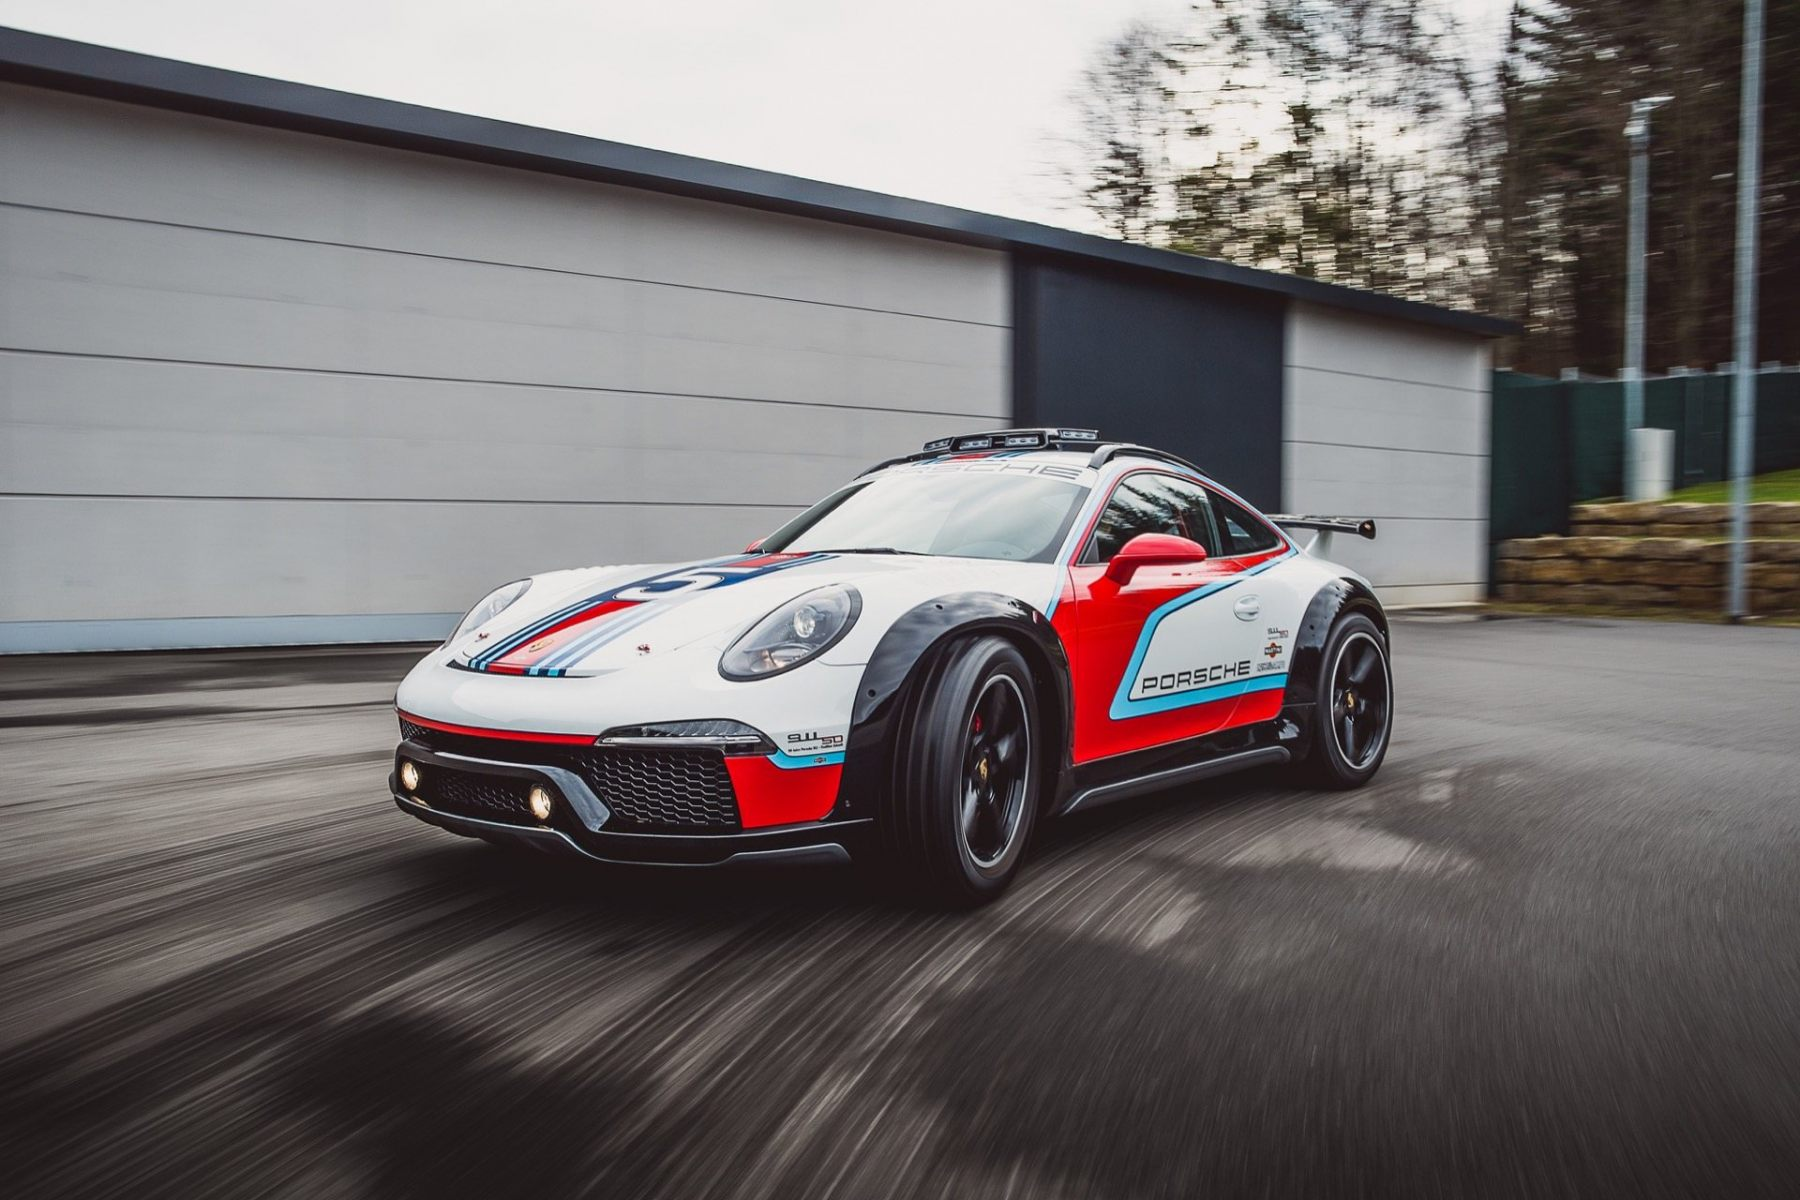 Porsche Shows Off Unseen Concept Cars From 919 Street To The Coolest Race Van Autoguide Com News